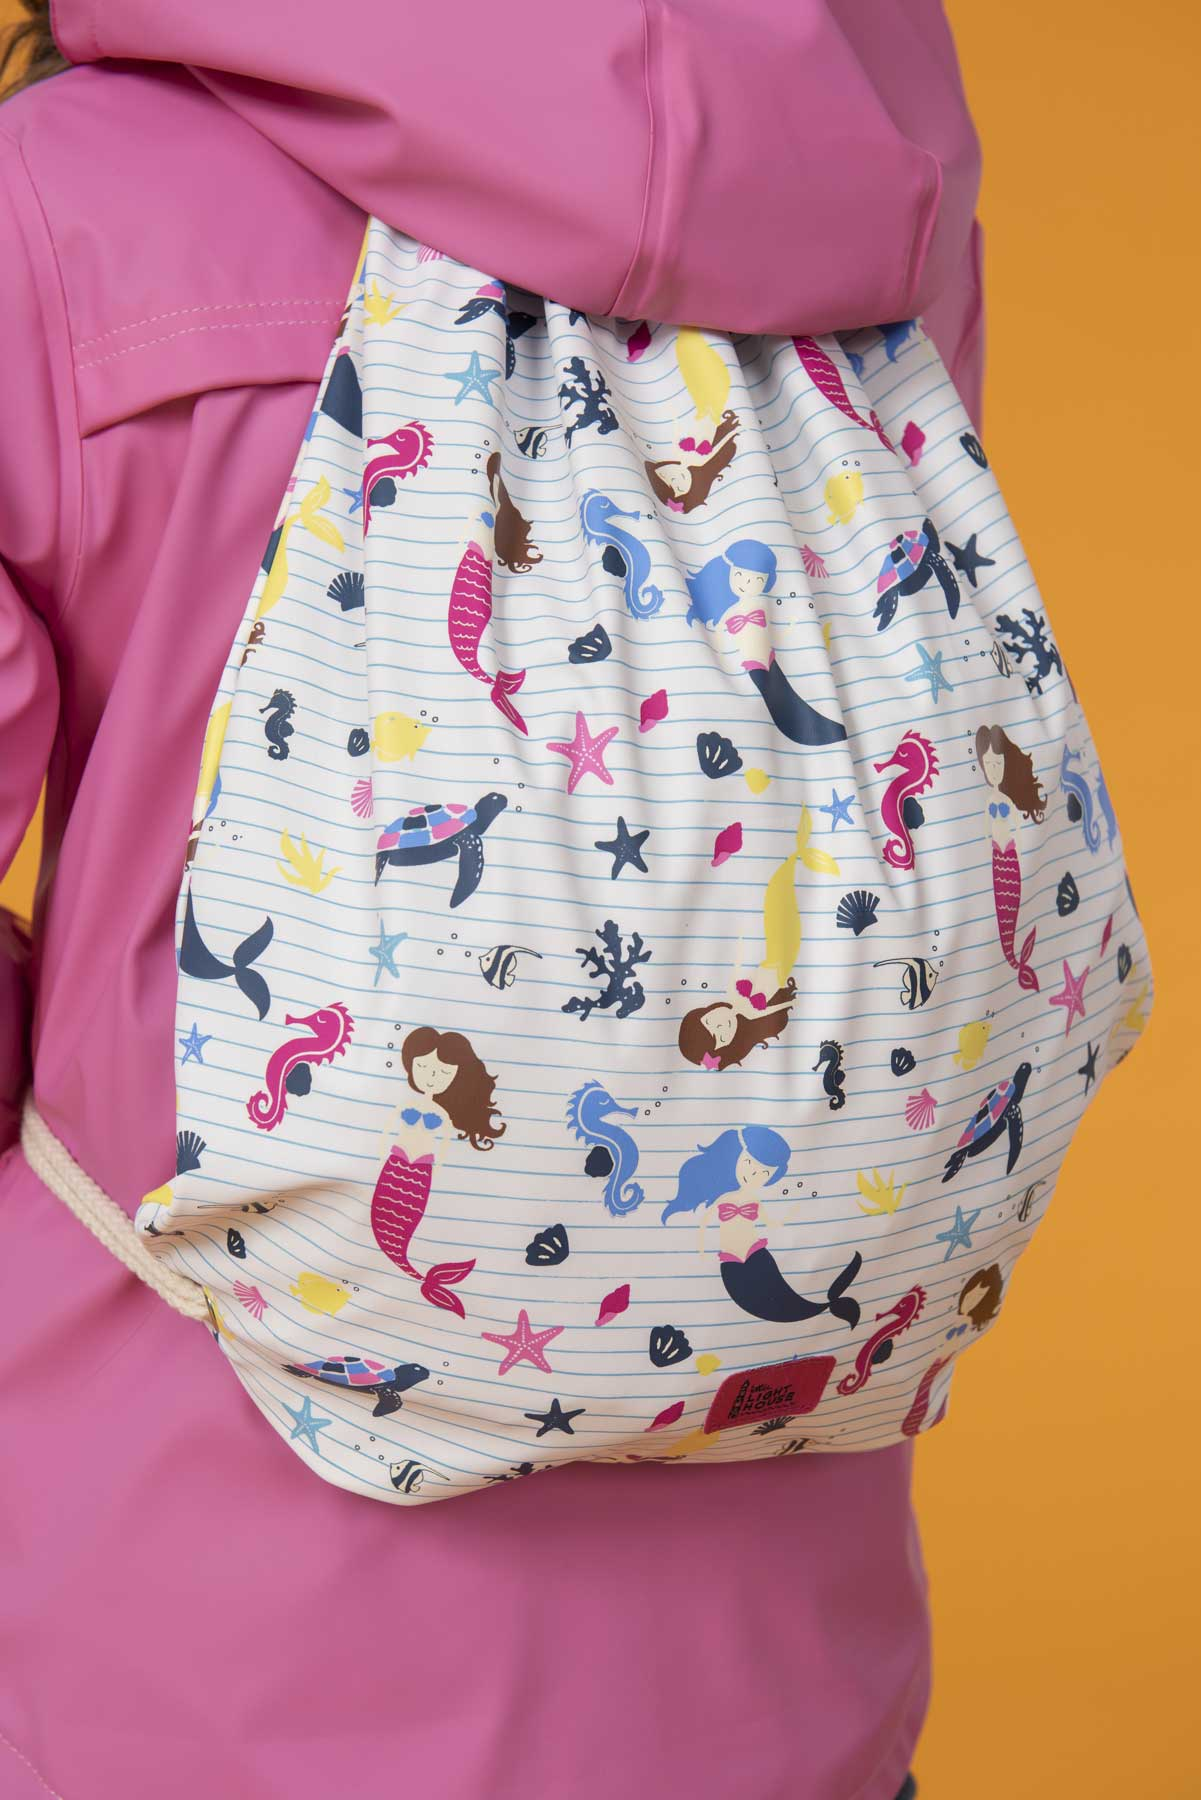 Boy's mermaid print waterproof drawstring bag